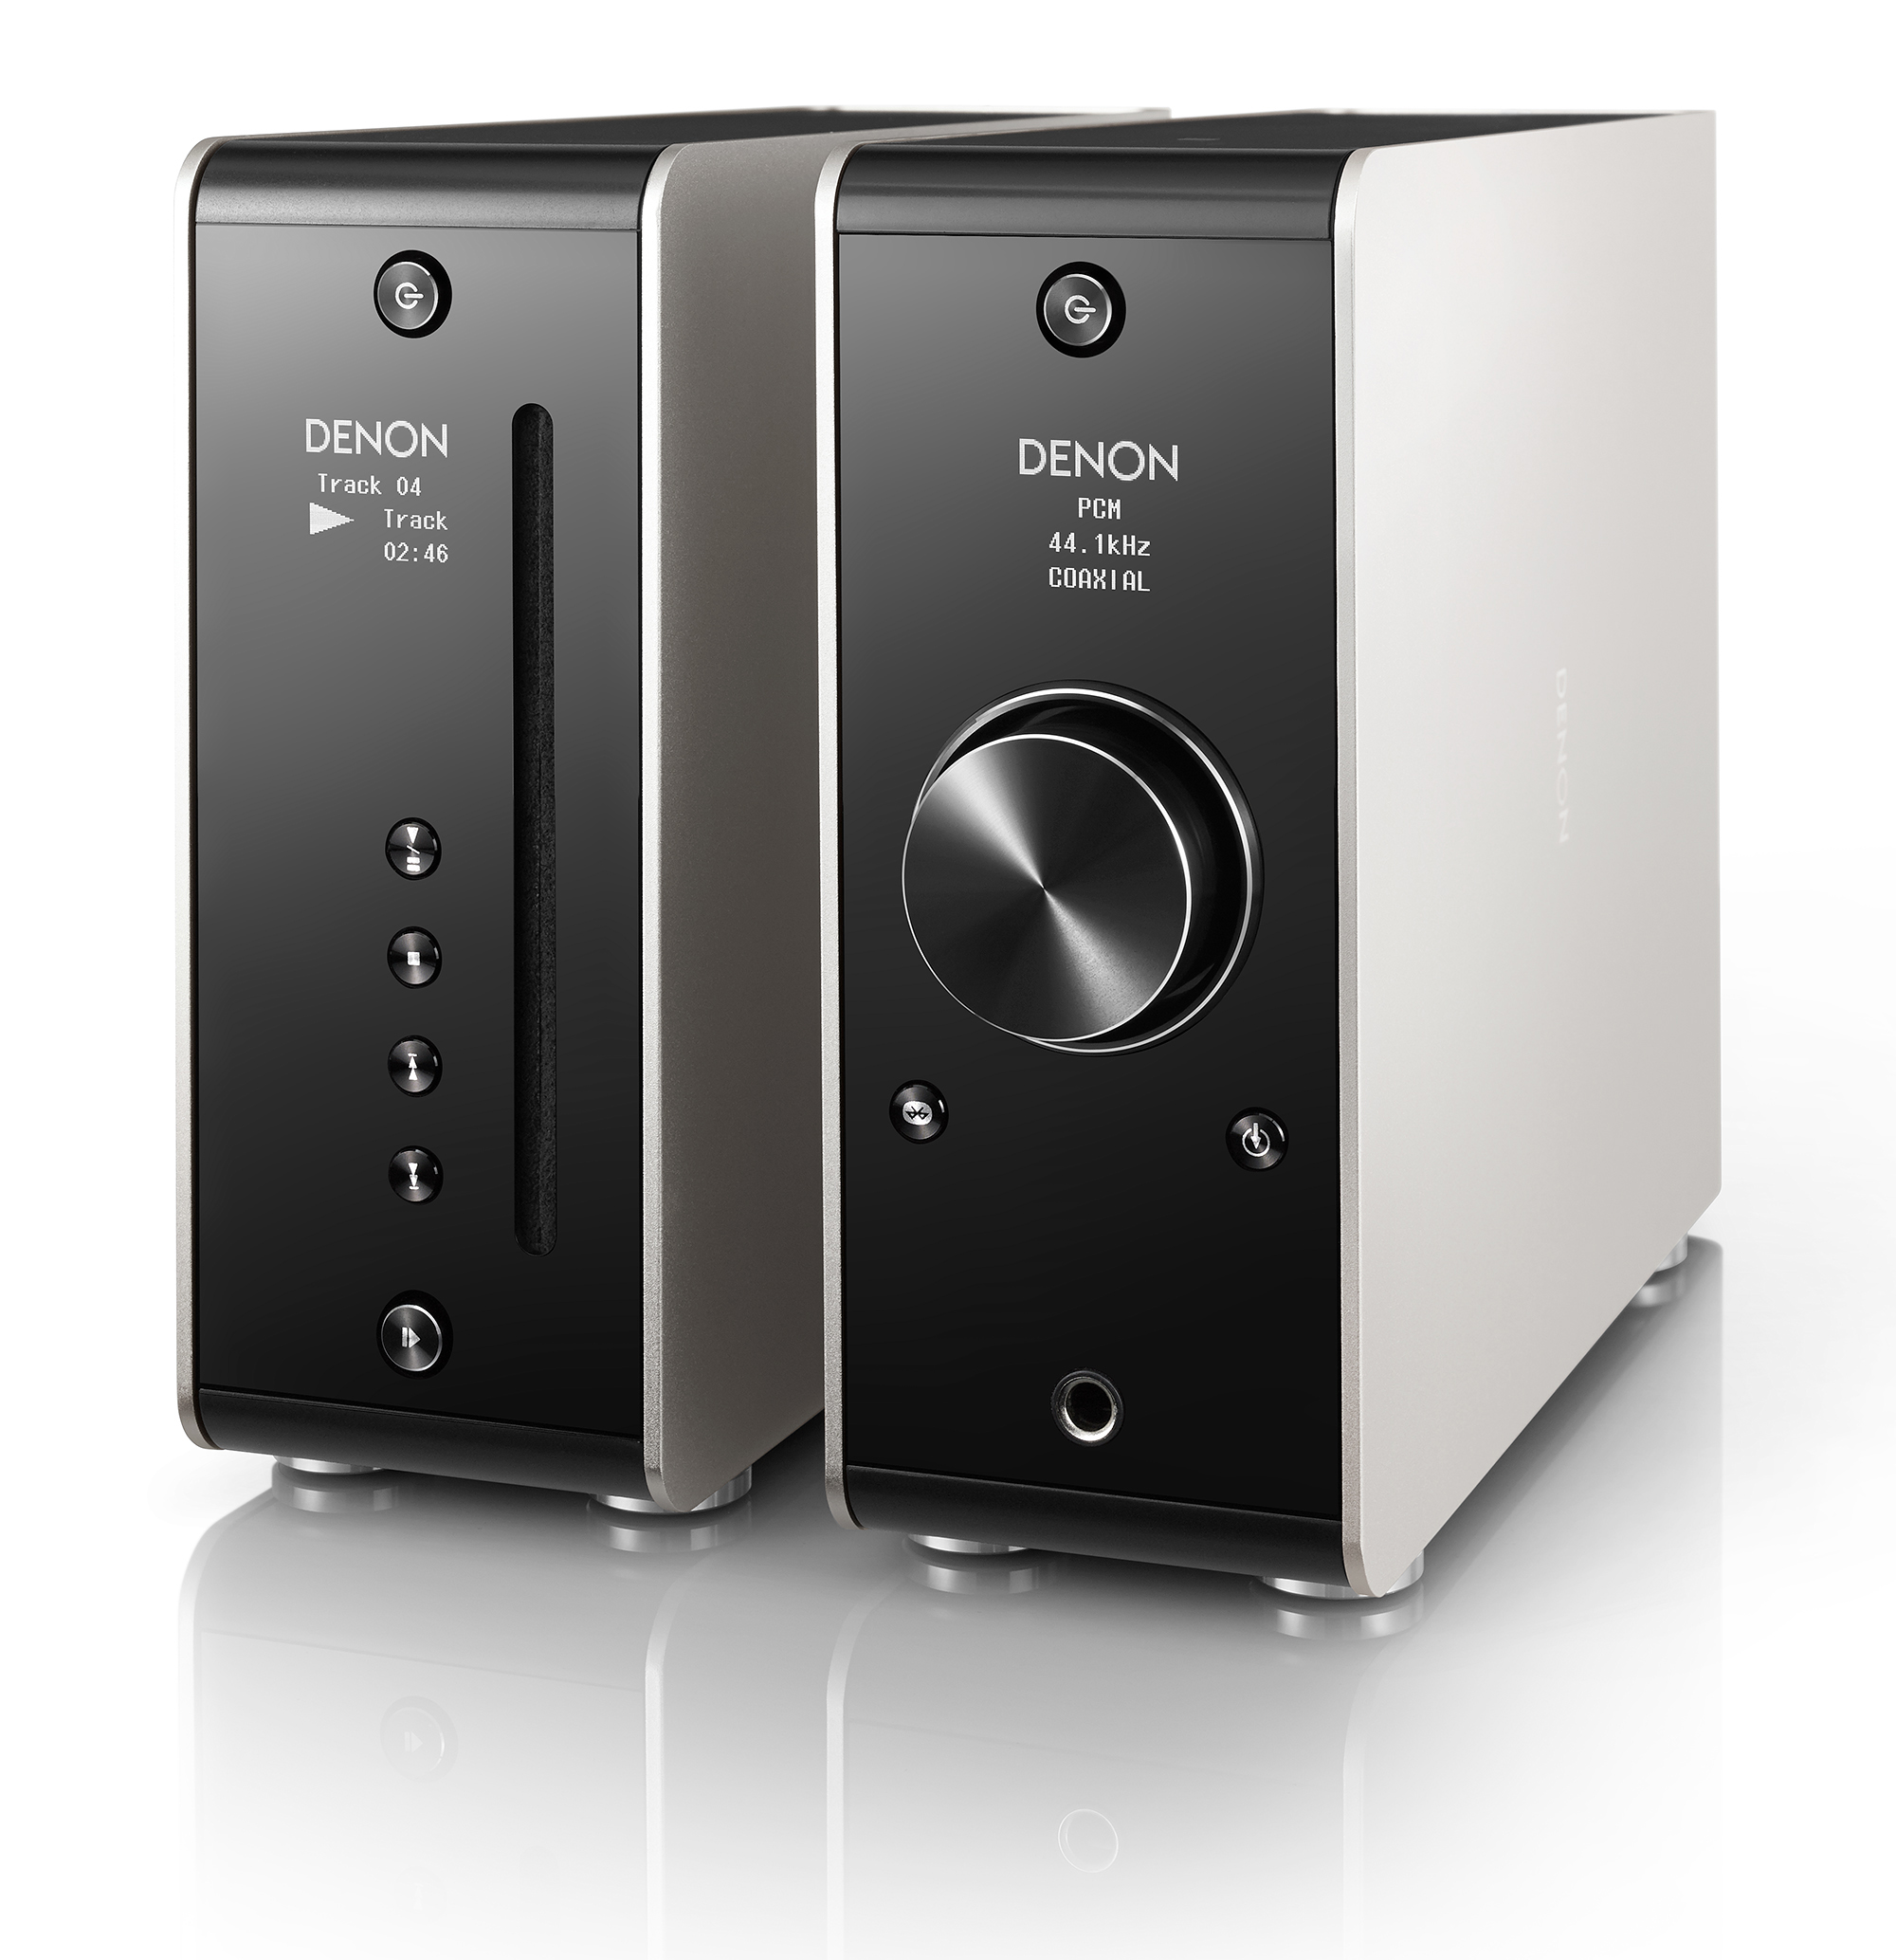 Pma 60 Compact Integrated Amplifier Egrated Circuit Type 747 Accommodates Two Operational Amplifiers Range Of Speaker Types Its Design Allows It To Fit In Limited Spaces And You Can Even Place The Vertically Orientation Oled